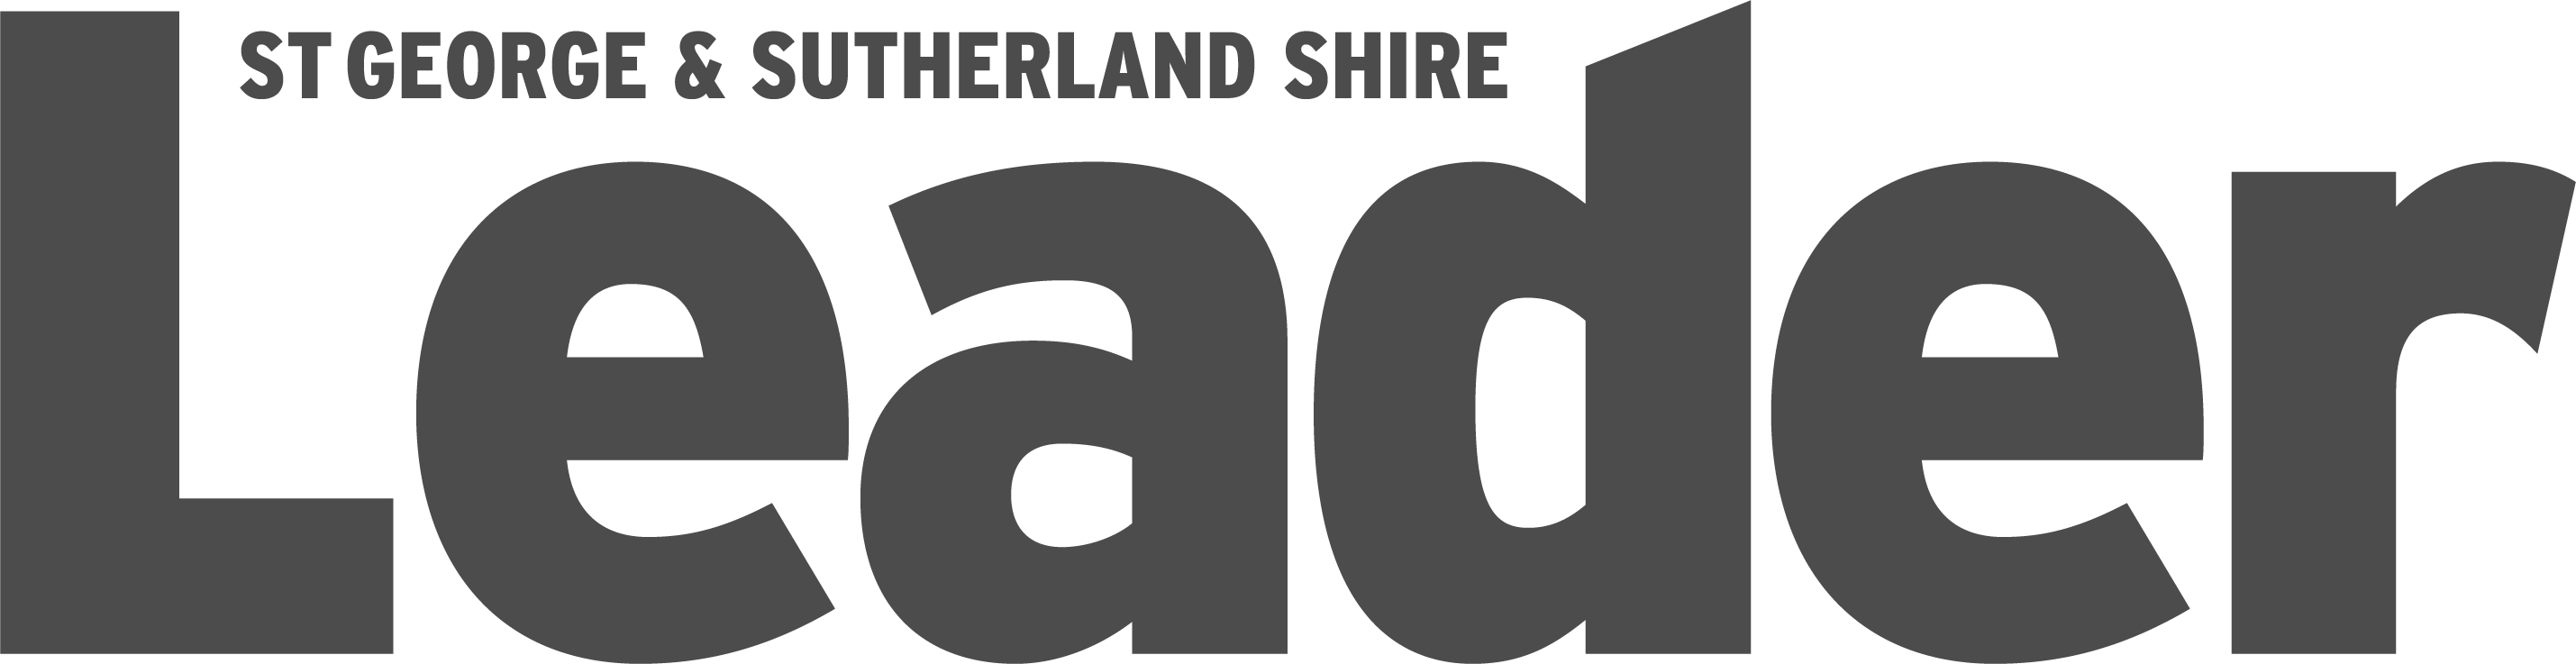 St George & Sutherland Shire Leader